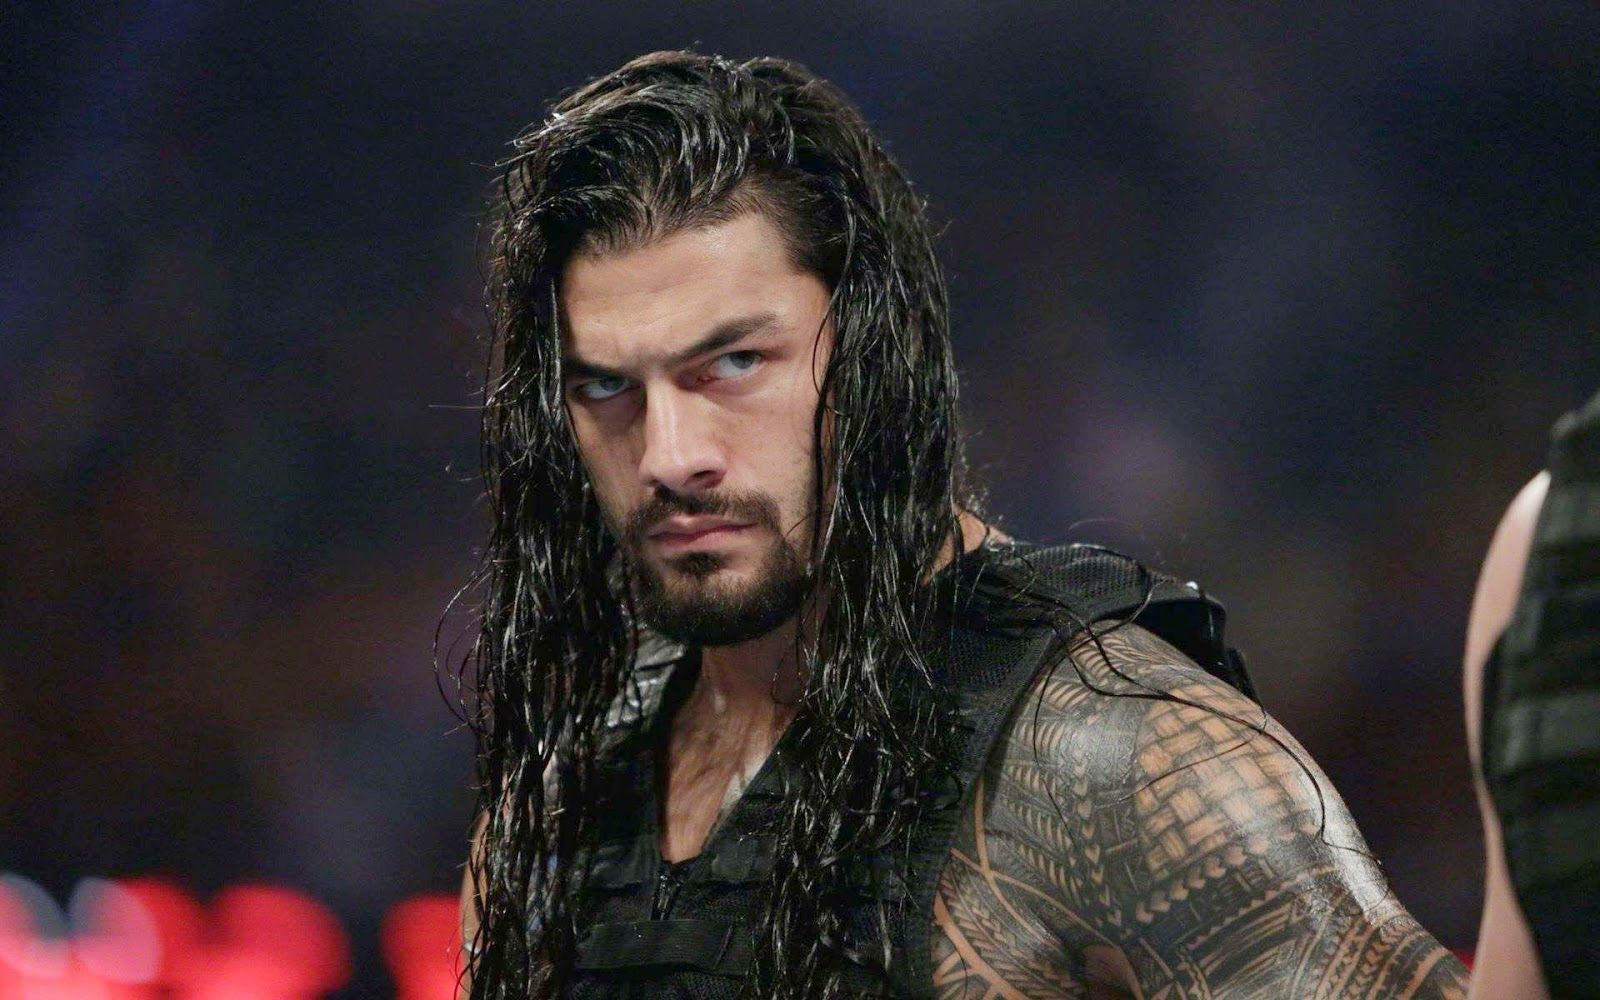 Roman Reigns Wallpapers Hd Download Free 1080p Roman Reigns Fans